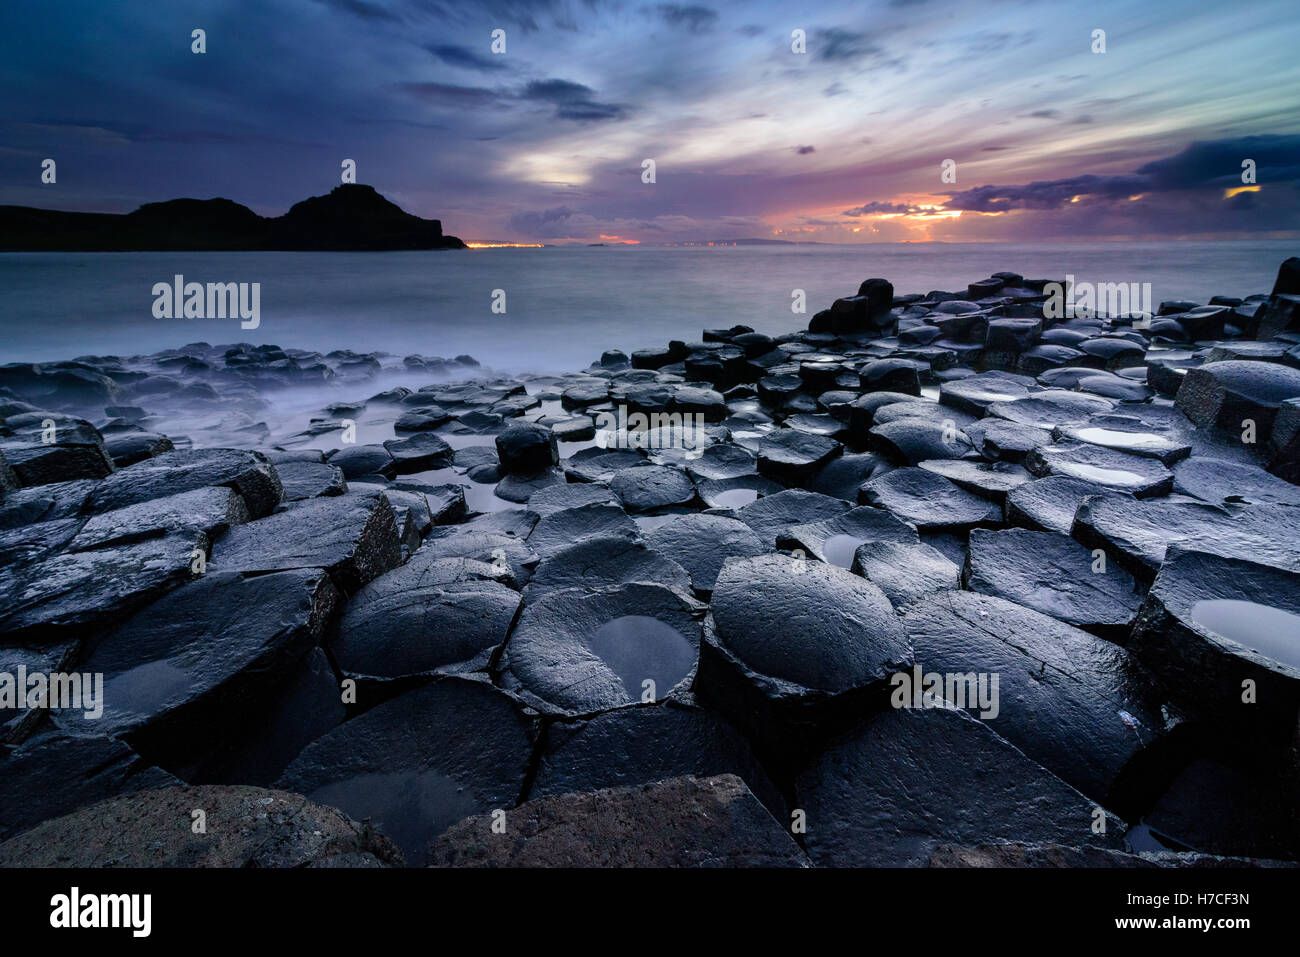 Giant's Causeway, Co. Antrim, Northern Ireland. Sunset - Stock Image